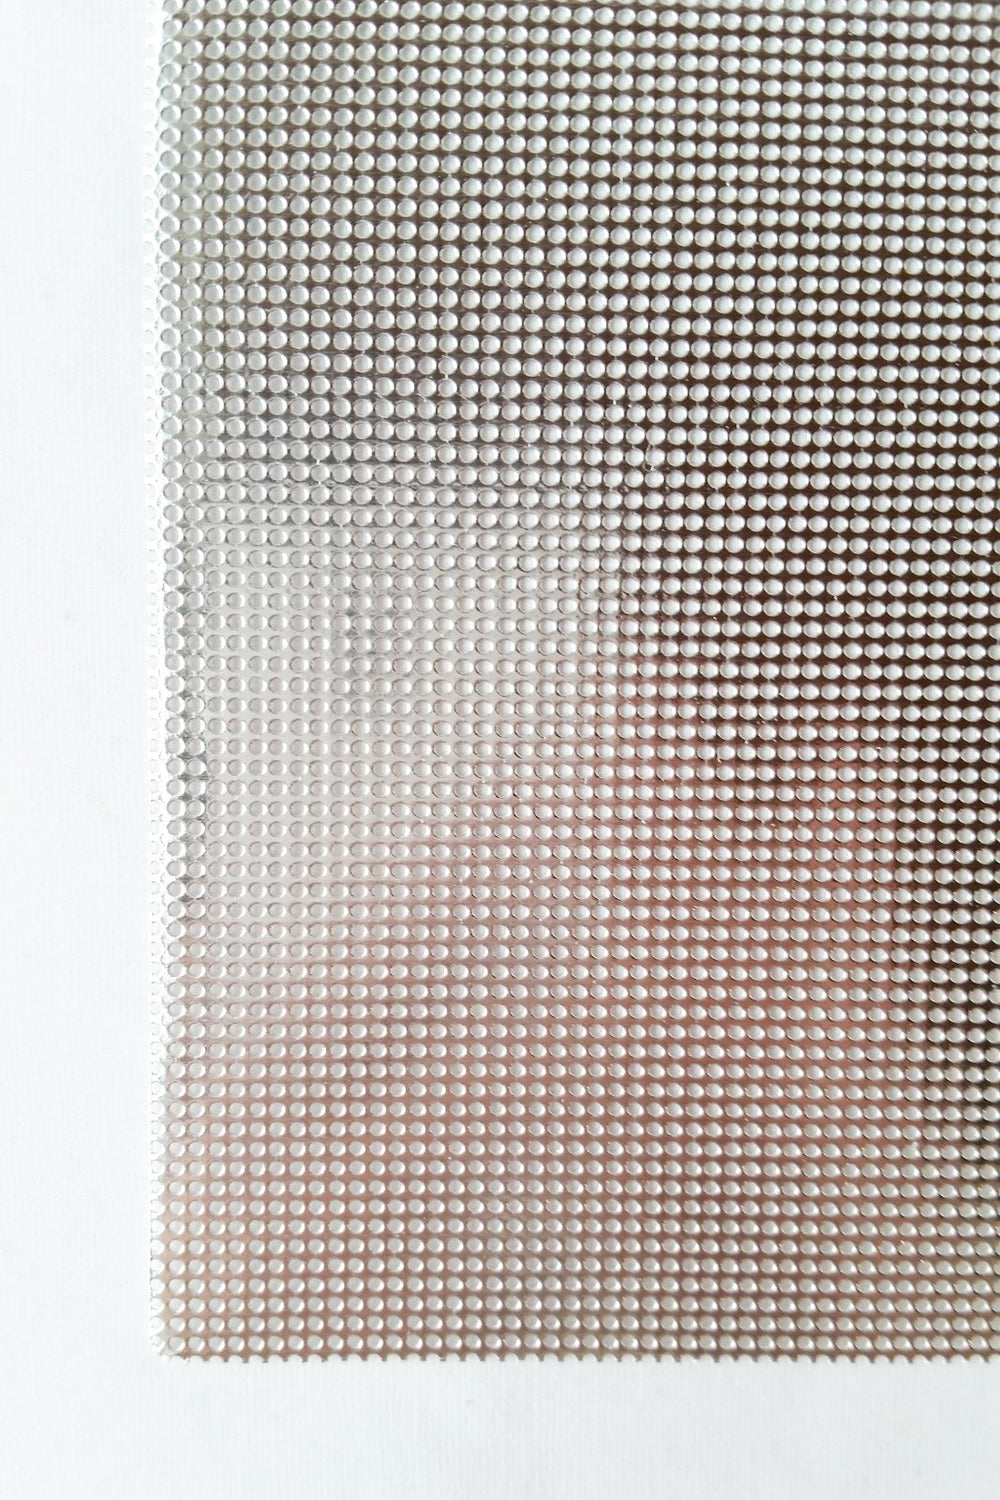 Shiny Metallic Silver Perforated Paper